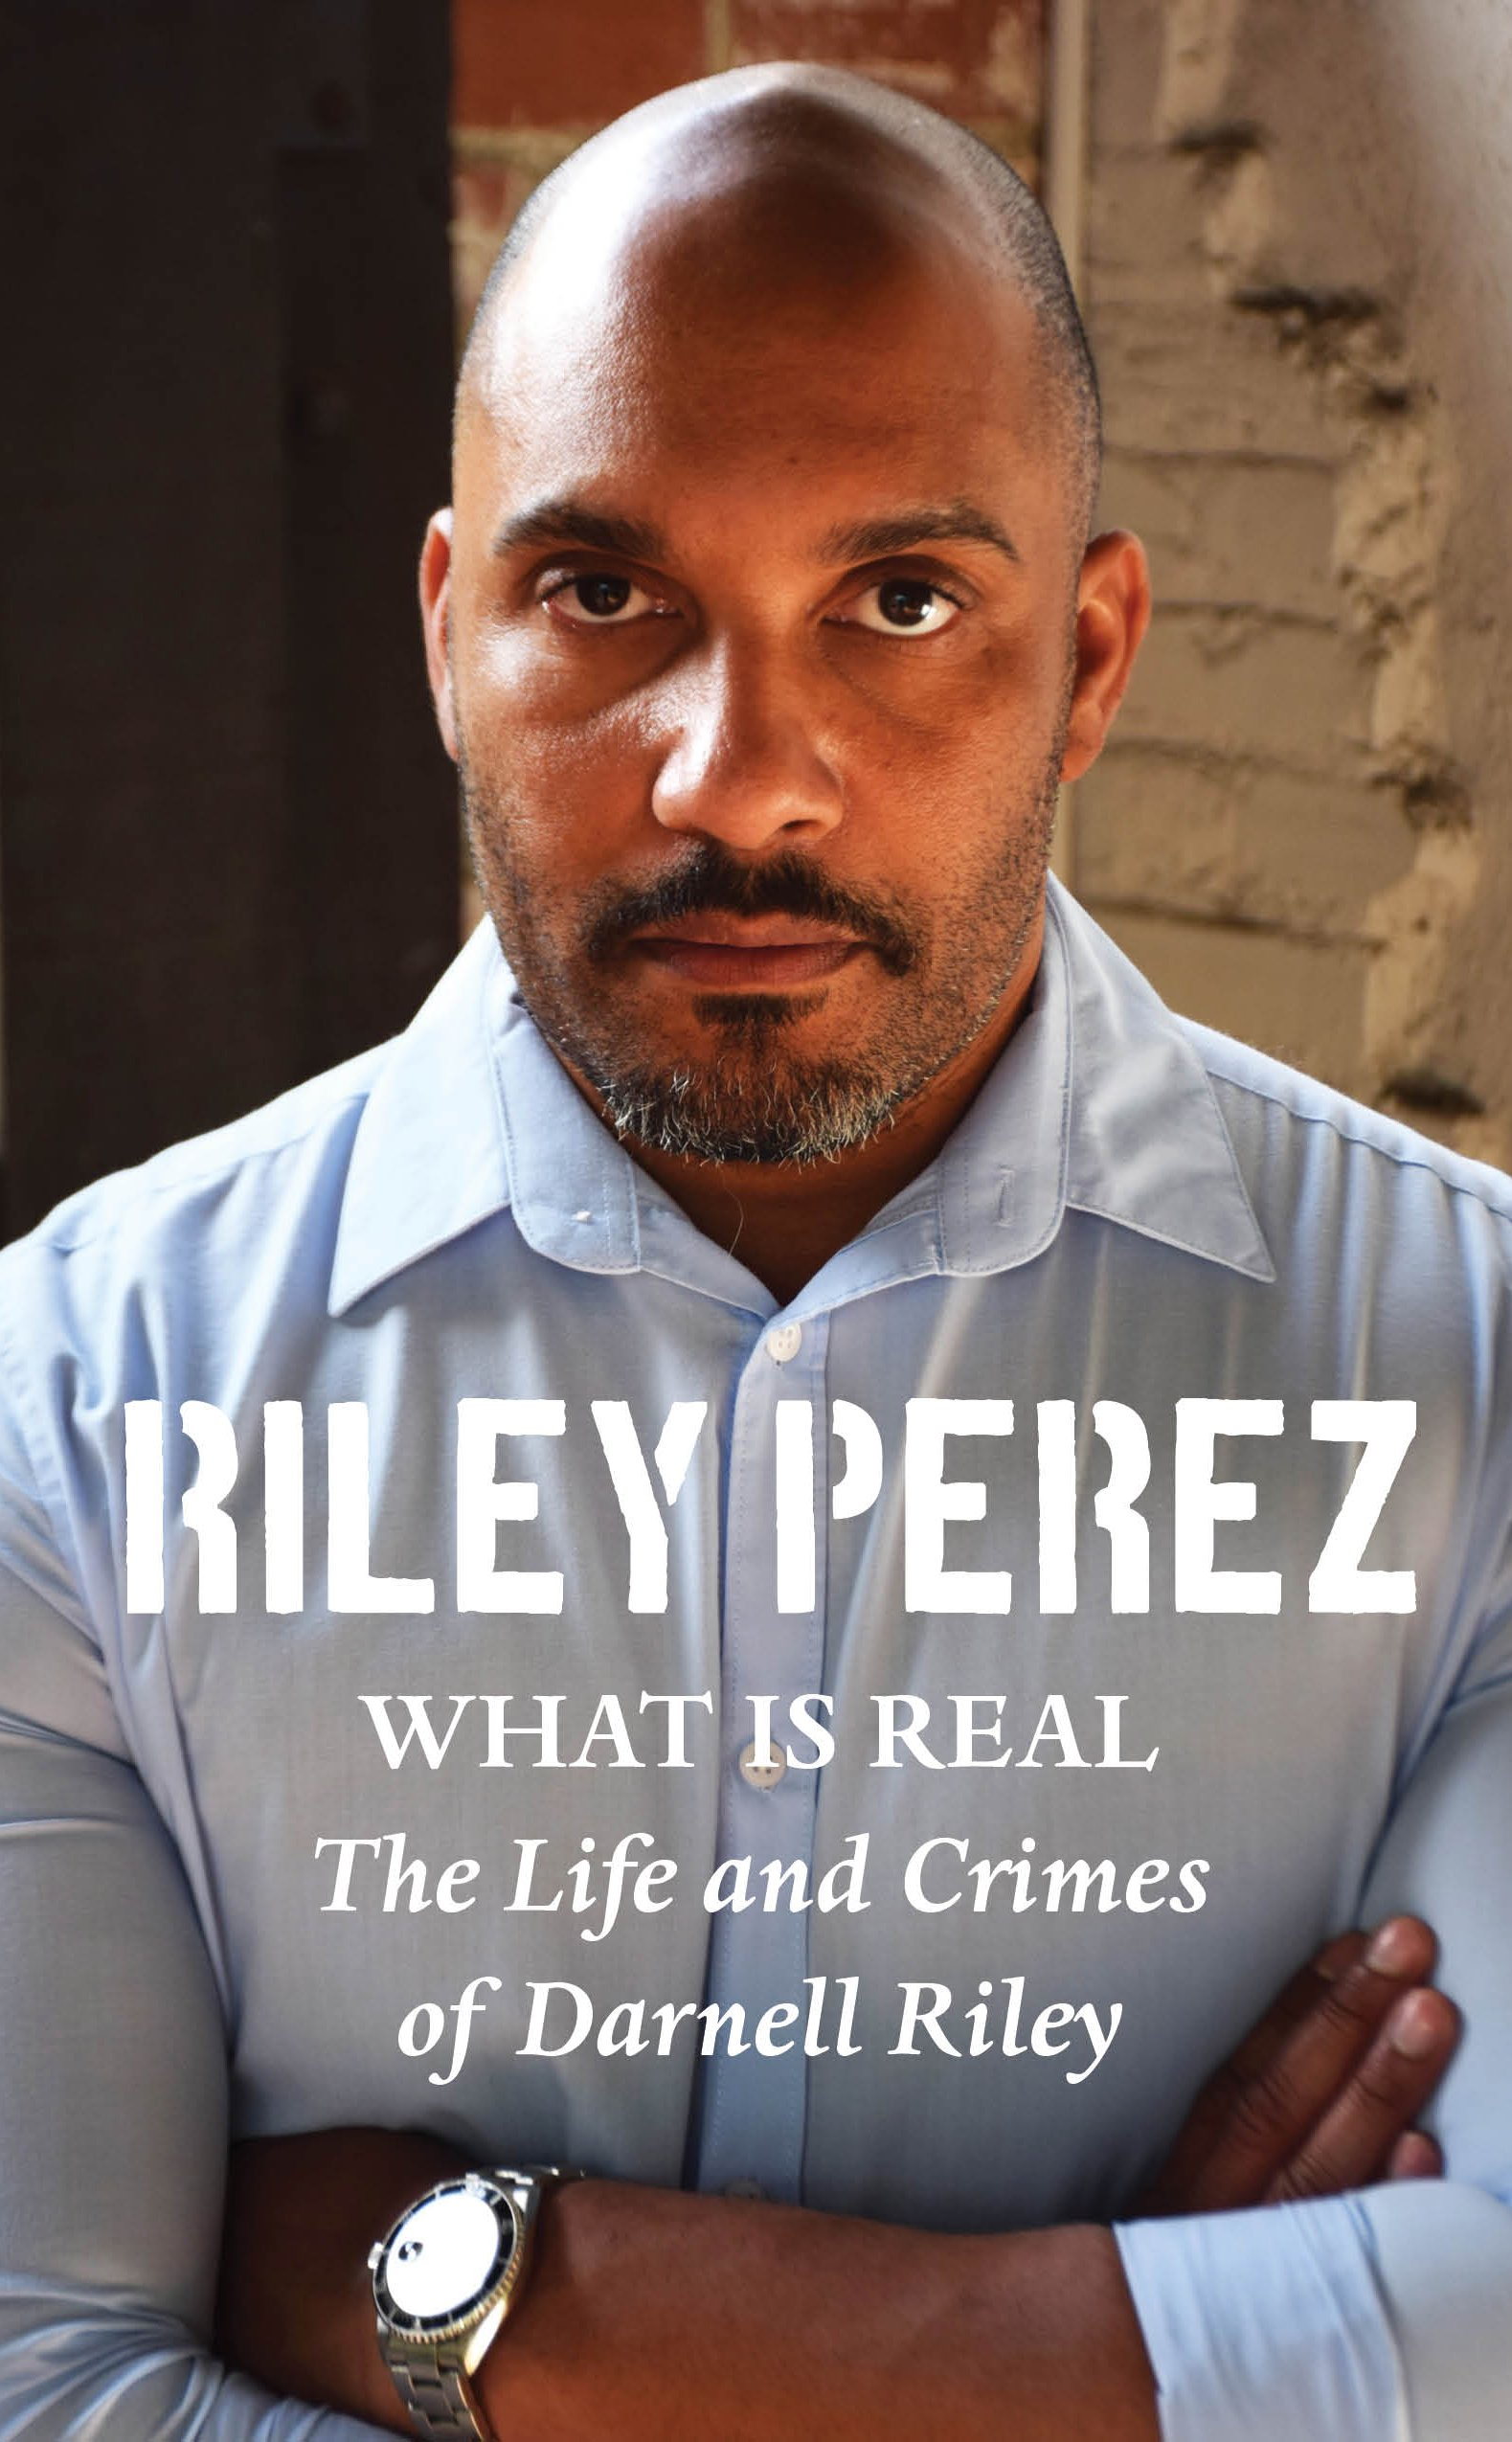 riley perez book